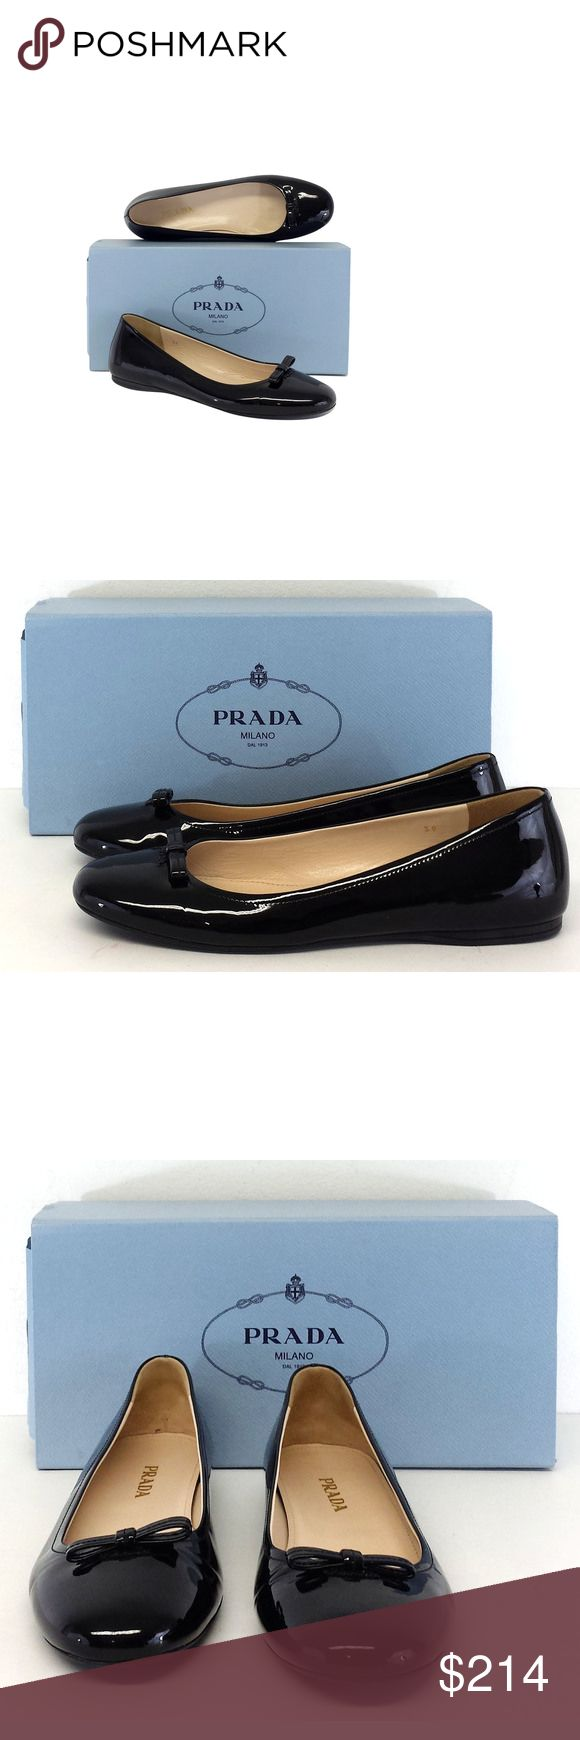 """Prada- Black Patent Leather Bow Ballerina Flats Sz 9 Size 9 (IT 39) Black Bow Ballerina Flats Rubber soles Very light wear on outsoles Patent leather upper Made in Italy Comes w/original box & dustbags Outsole Length 10.5"""" Prada is an Italian fashion label specializing in luxury goods for men and women (ready-to-wear, leather and fashion accessories, shoes, luggage, perfume etc.). Prada can be described as trendy, artful, beautiful. This brand uses the finest materials to make a woman feel…"""